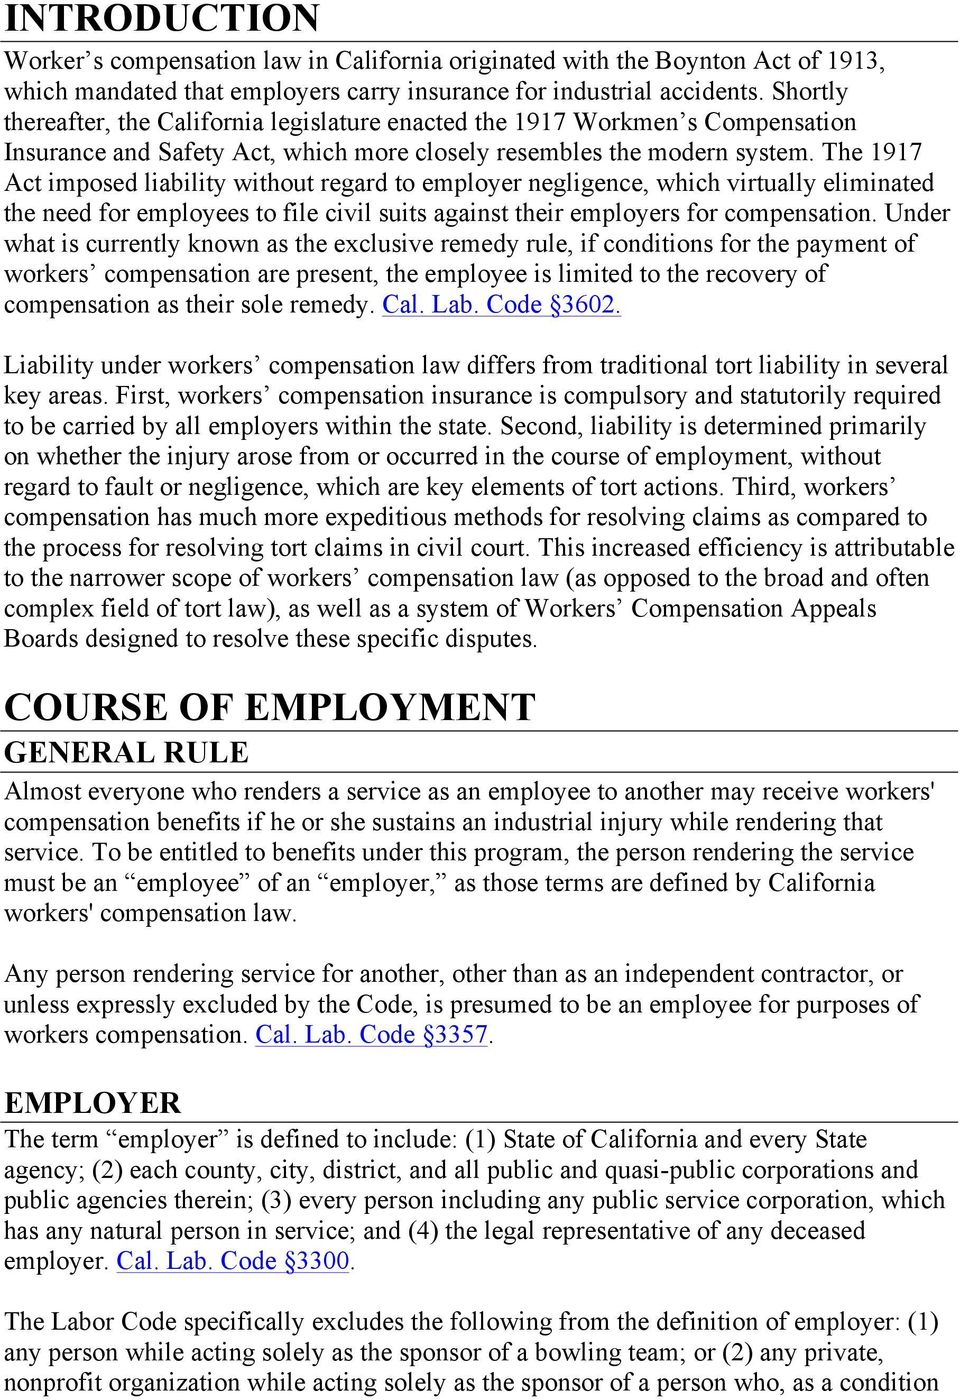 course of employment general rule - pdf